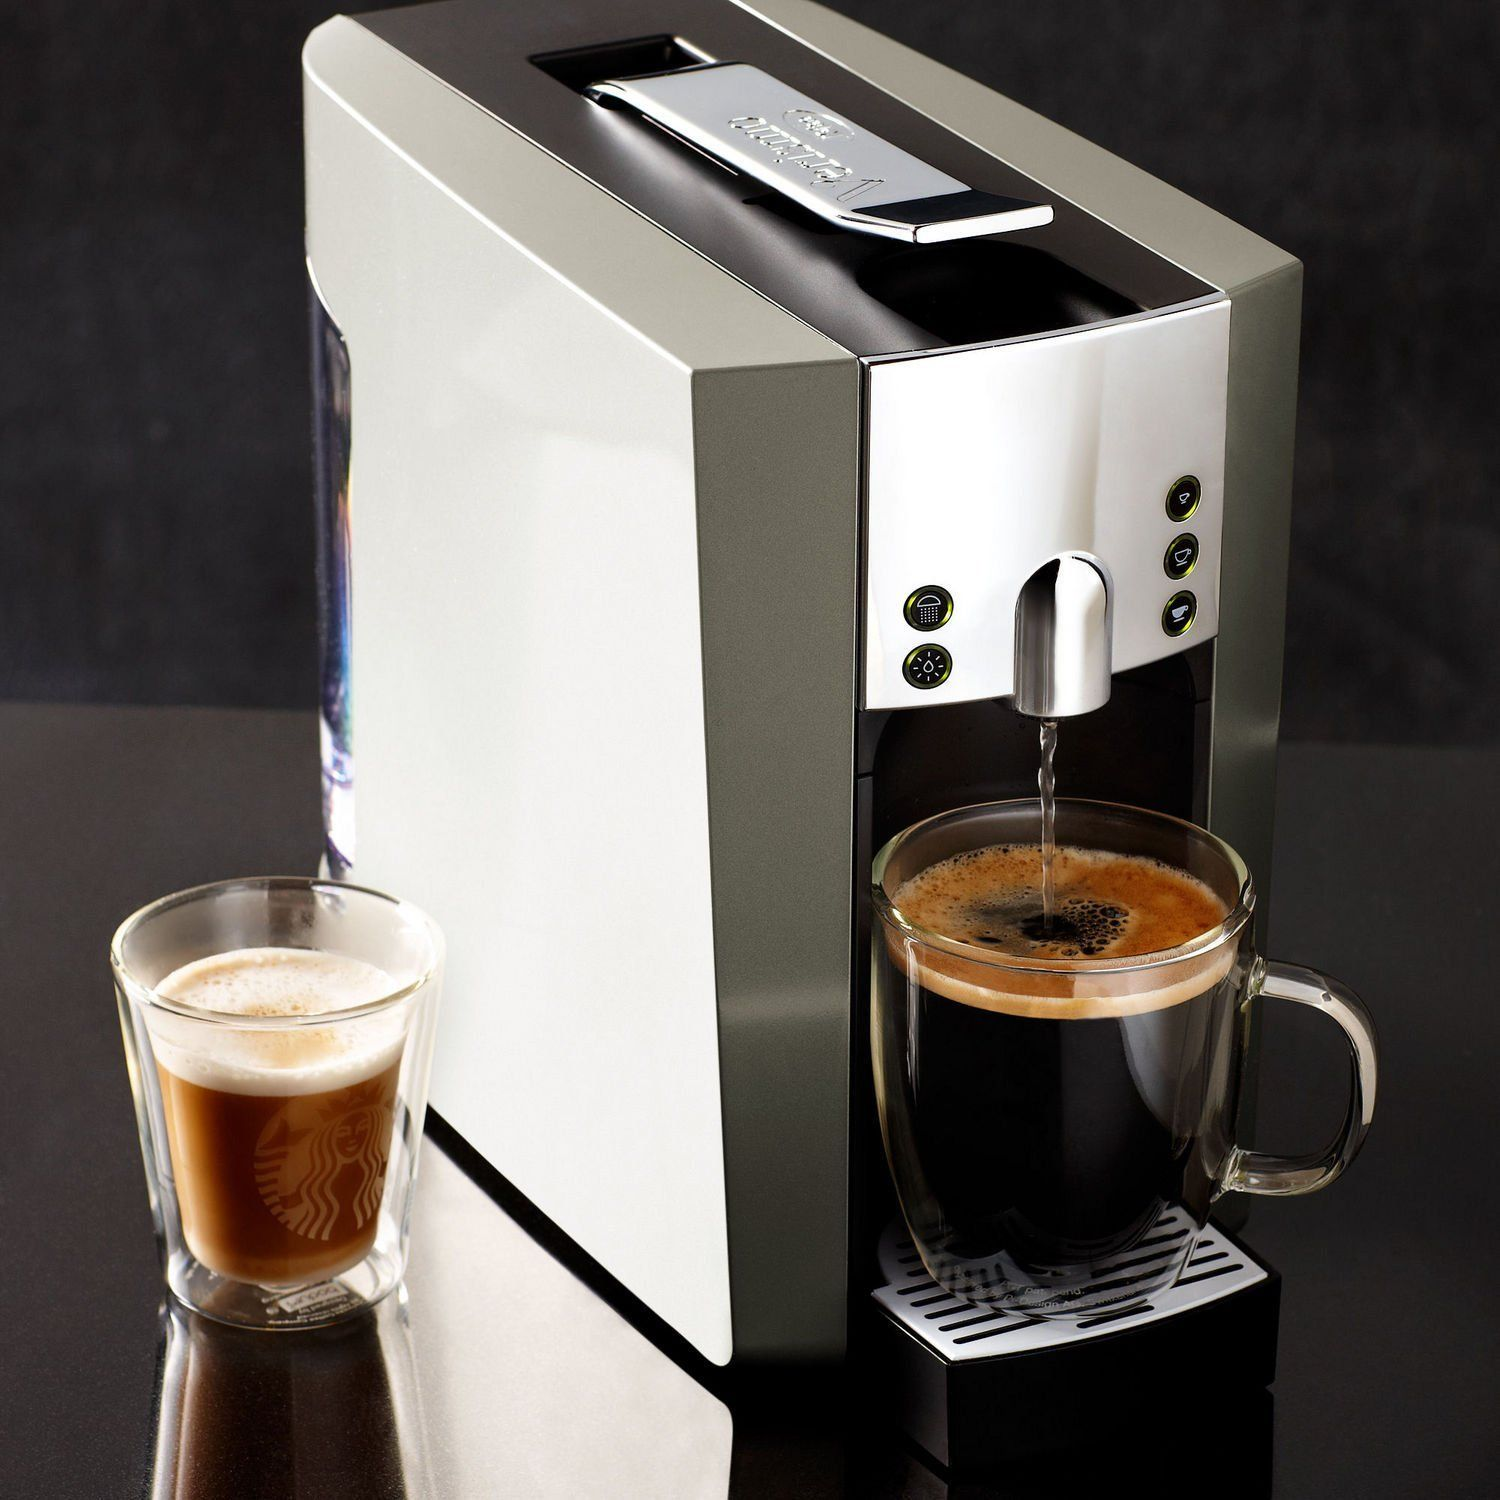 Starbucks® VerismoTM 600 Brewer in Silver * New and